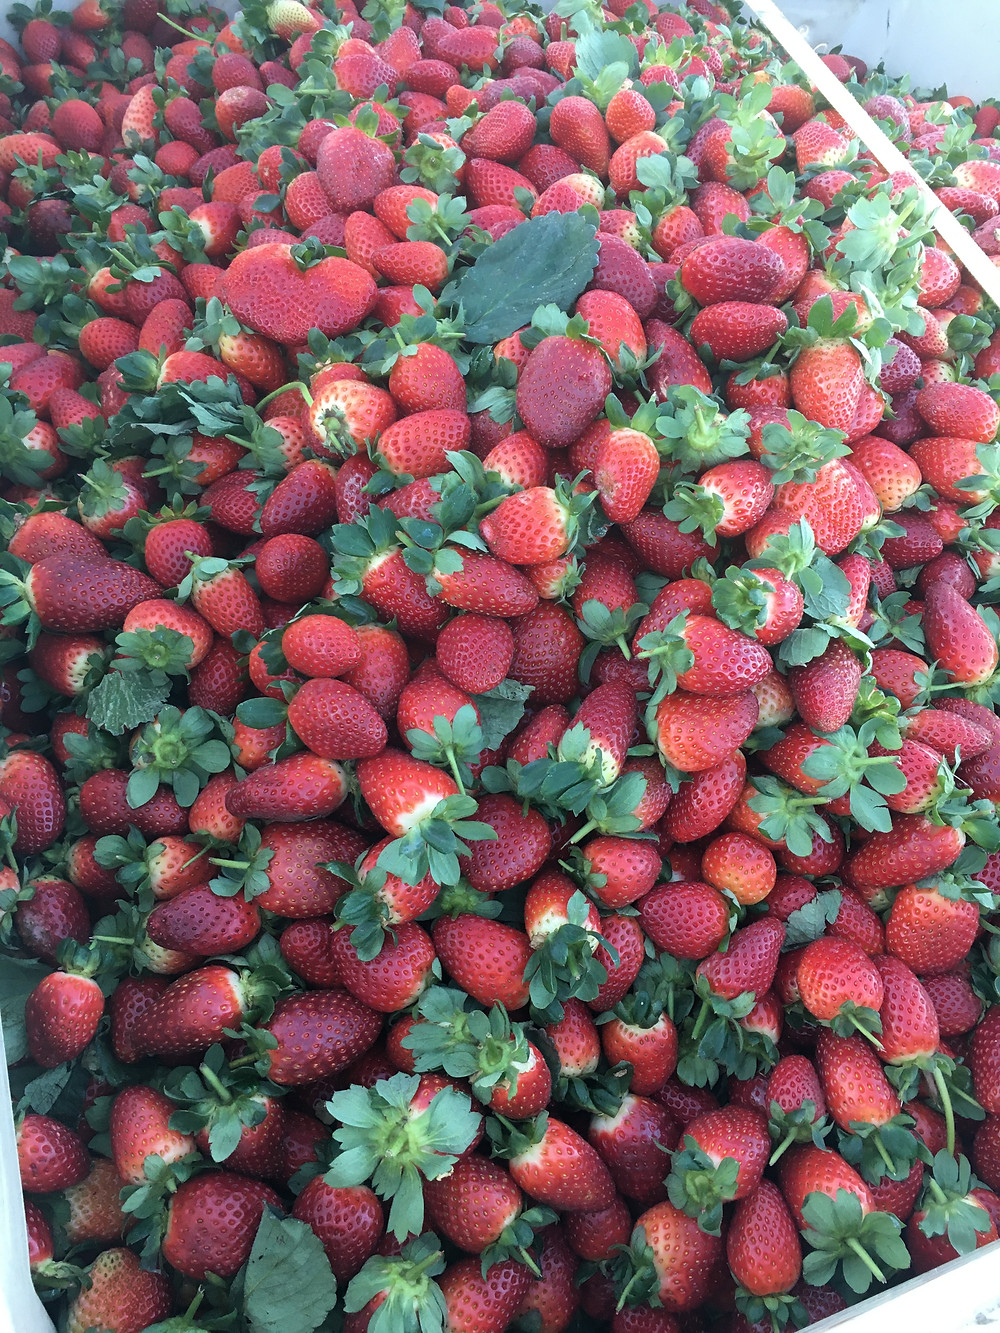 A big pile of fresh ripe red strawberries